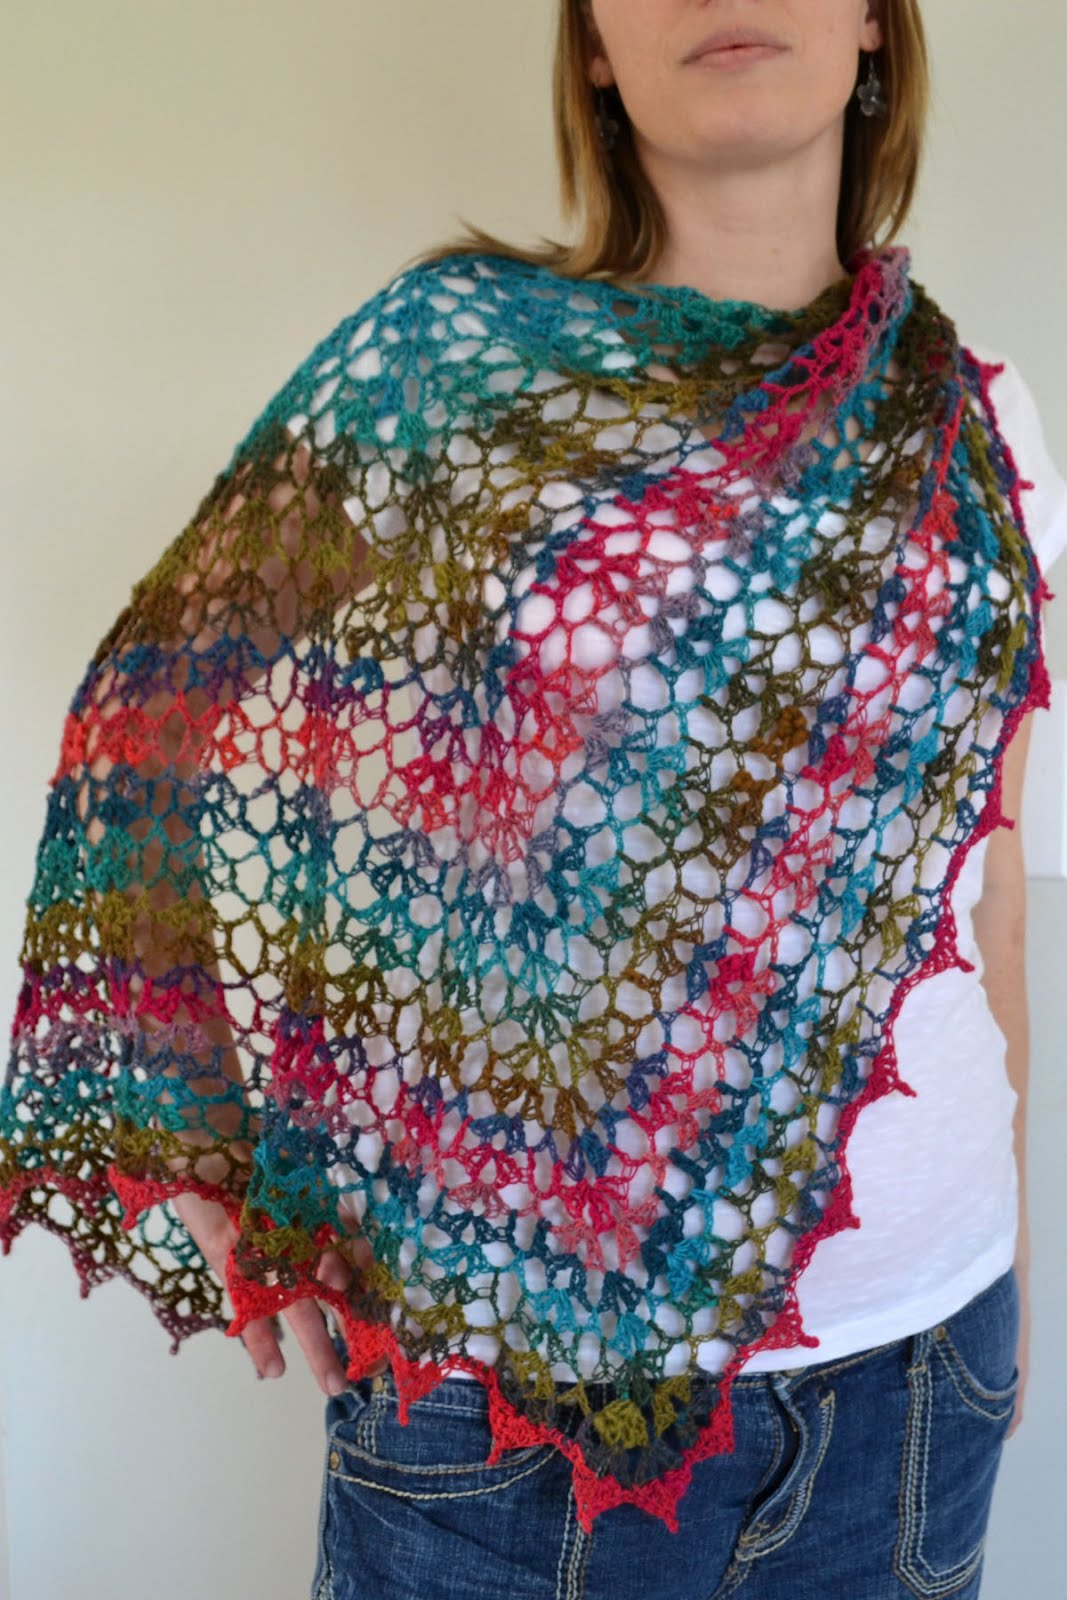 Noro Knitting Patterns : Crochet in Color: My Noro Shawl